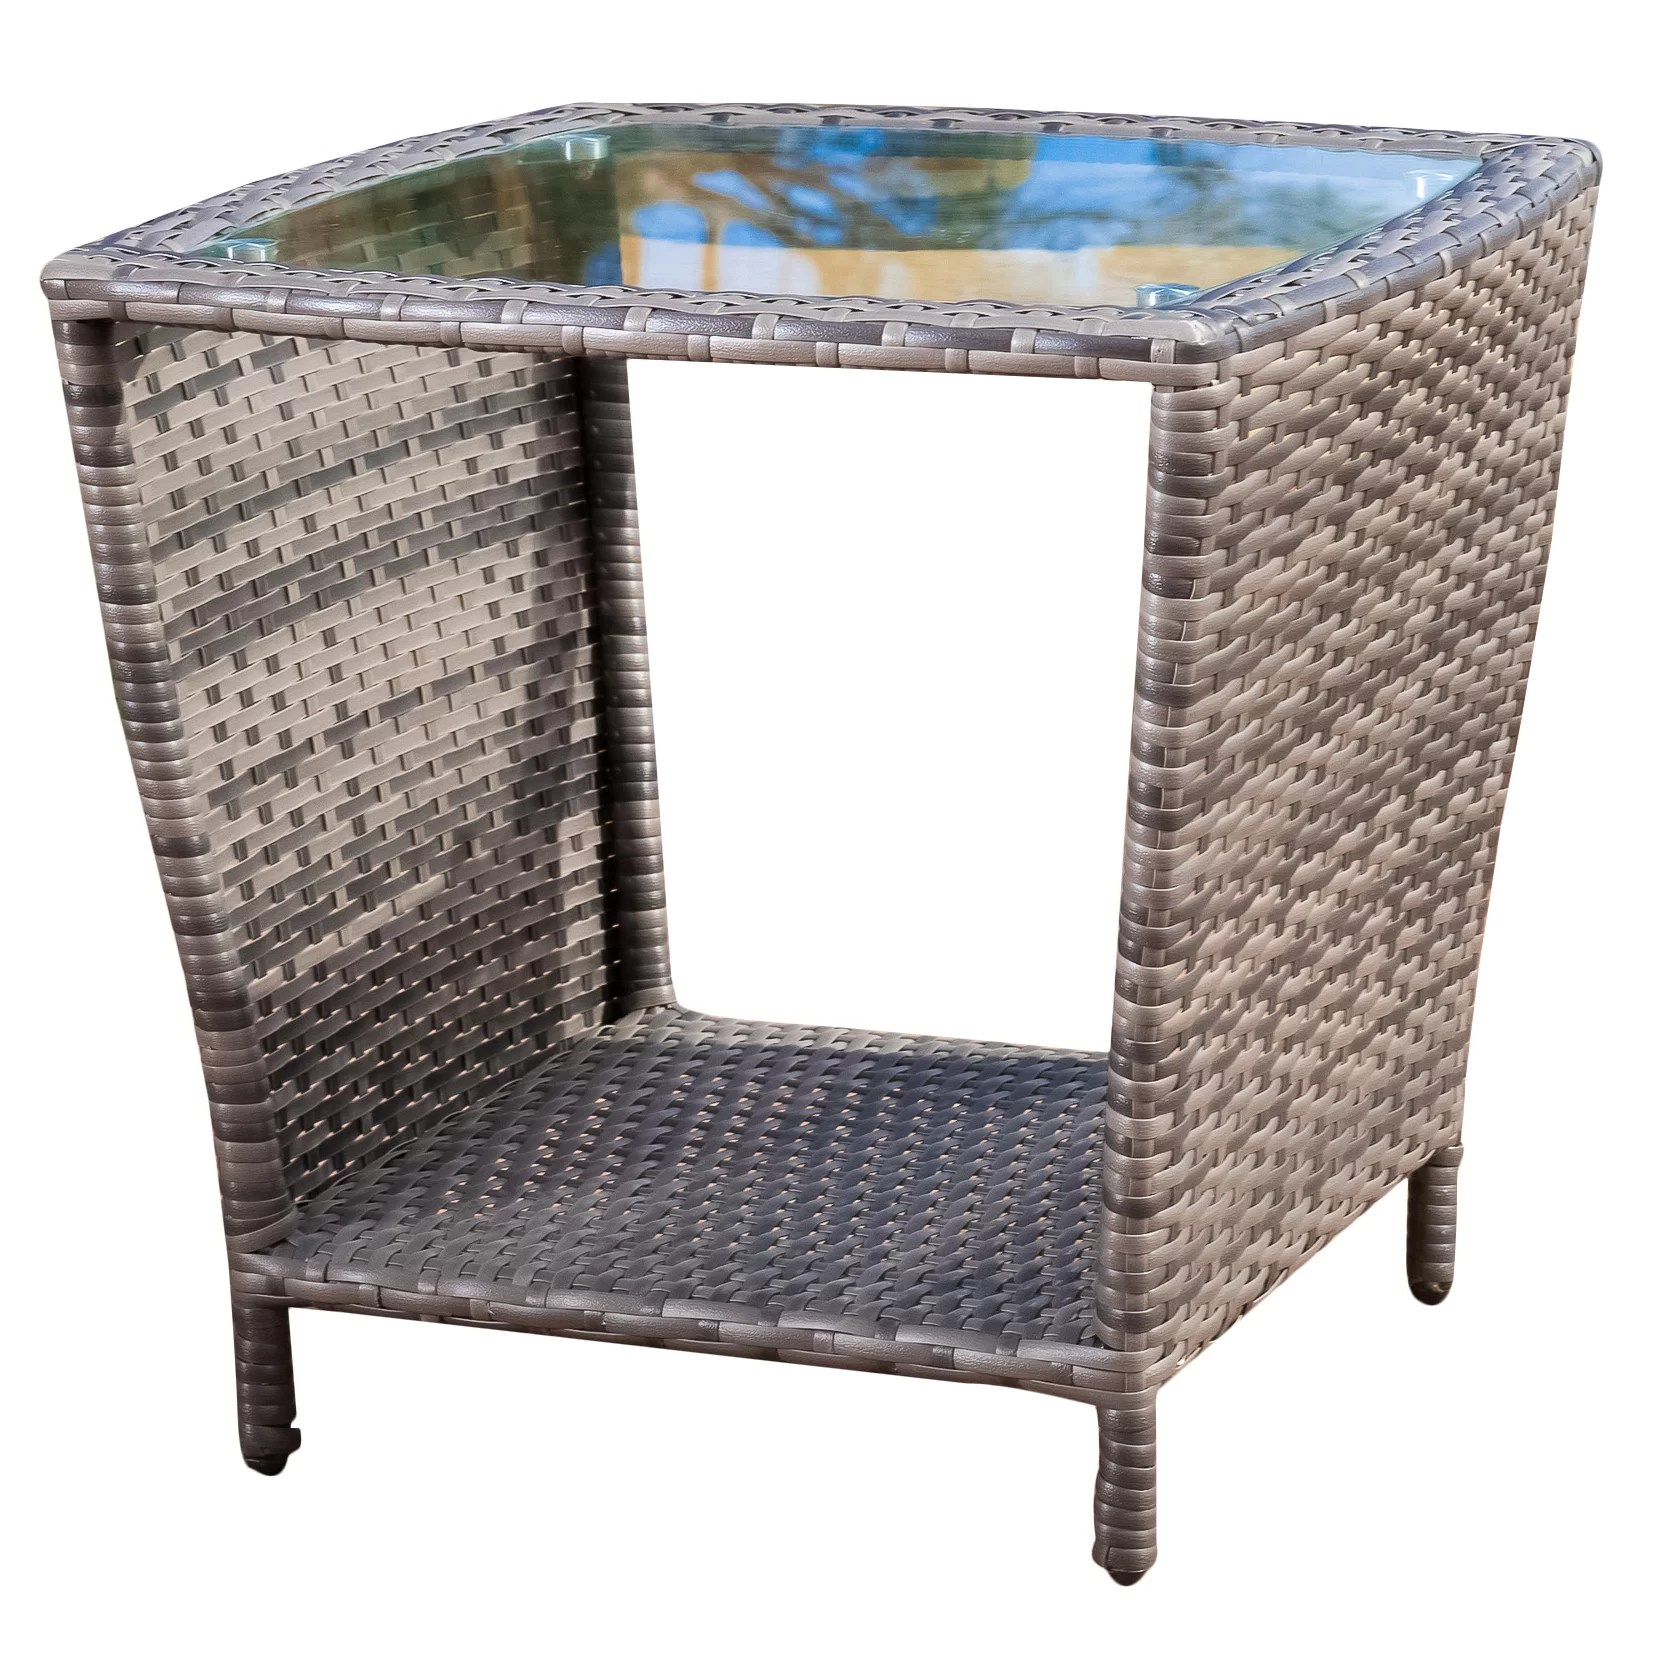 Glass Top Outdoor Table Mercury Row Austral Outdoor Wicker Side Table With Glass